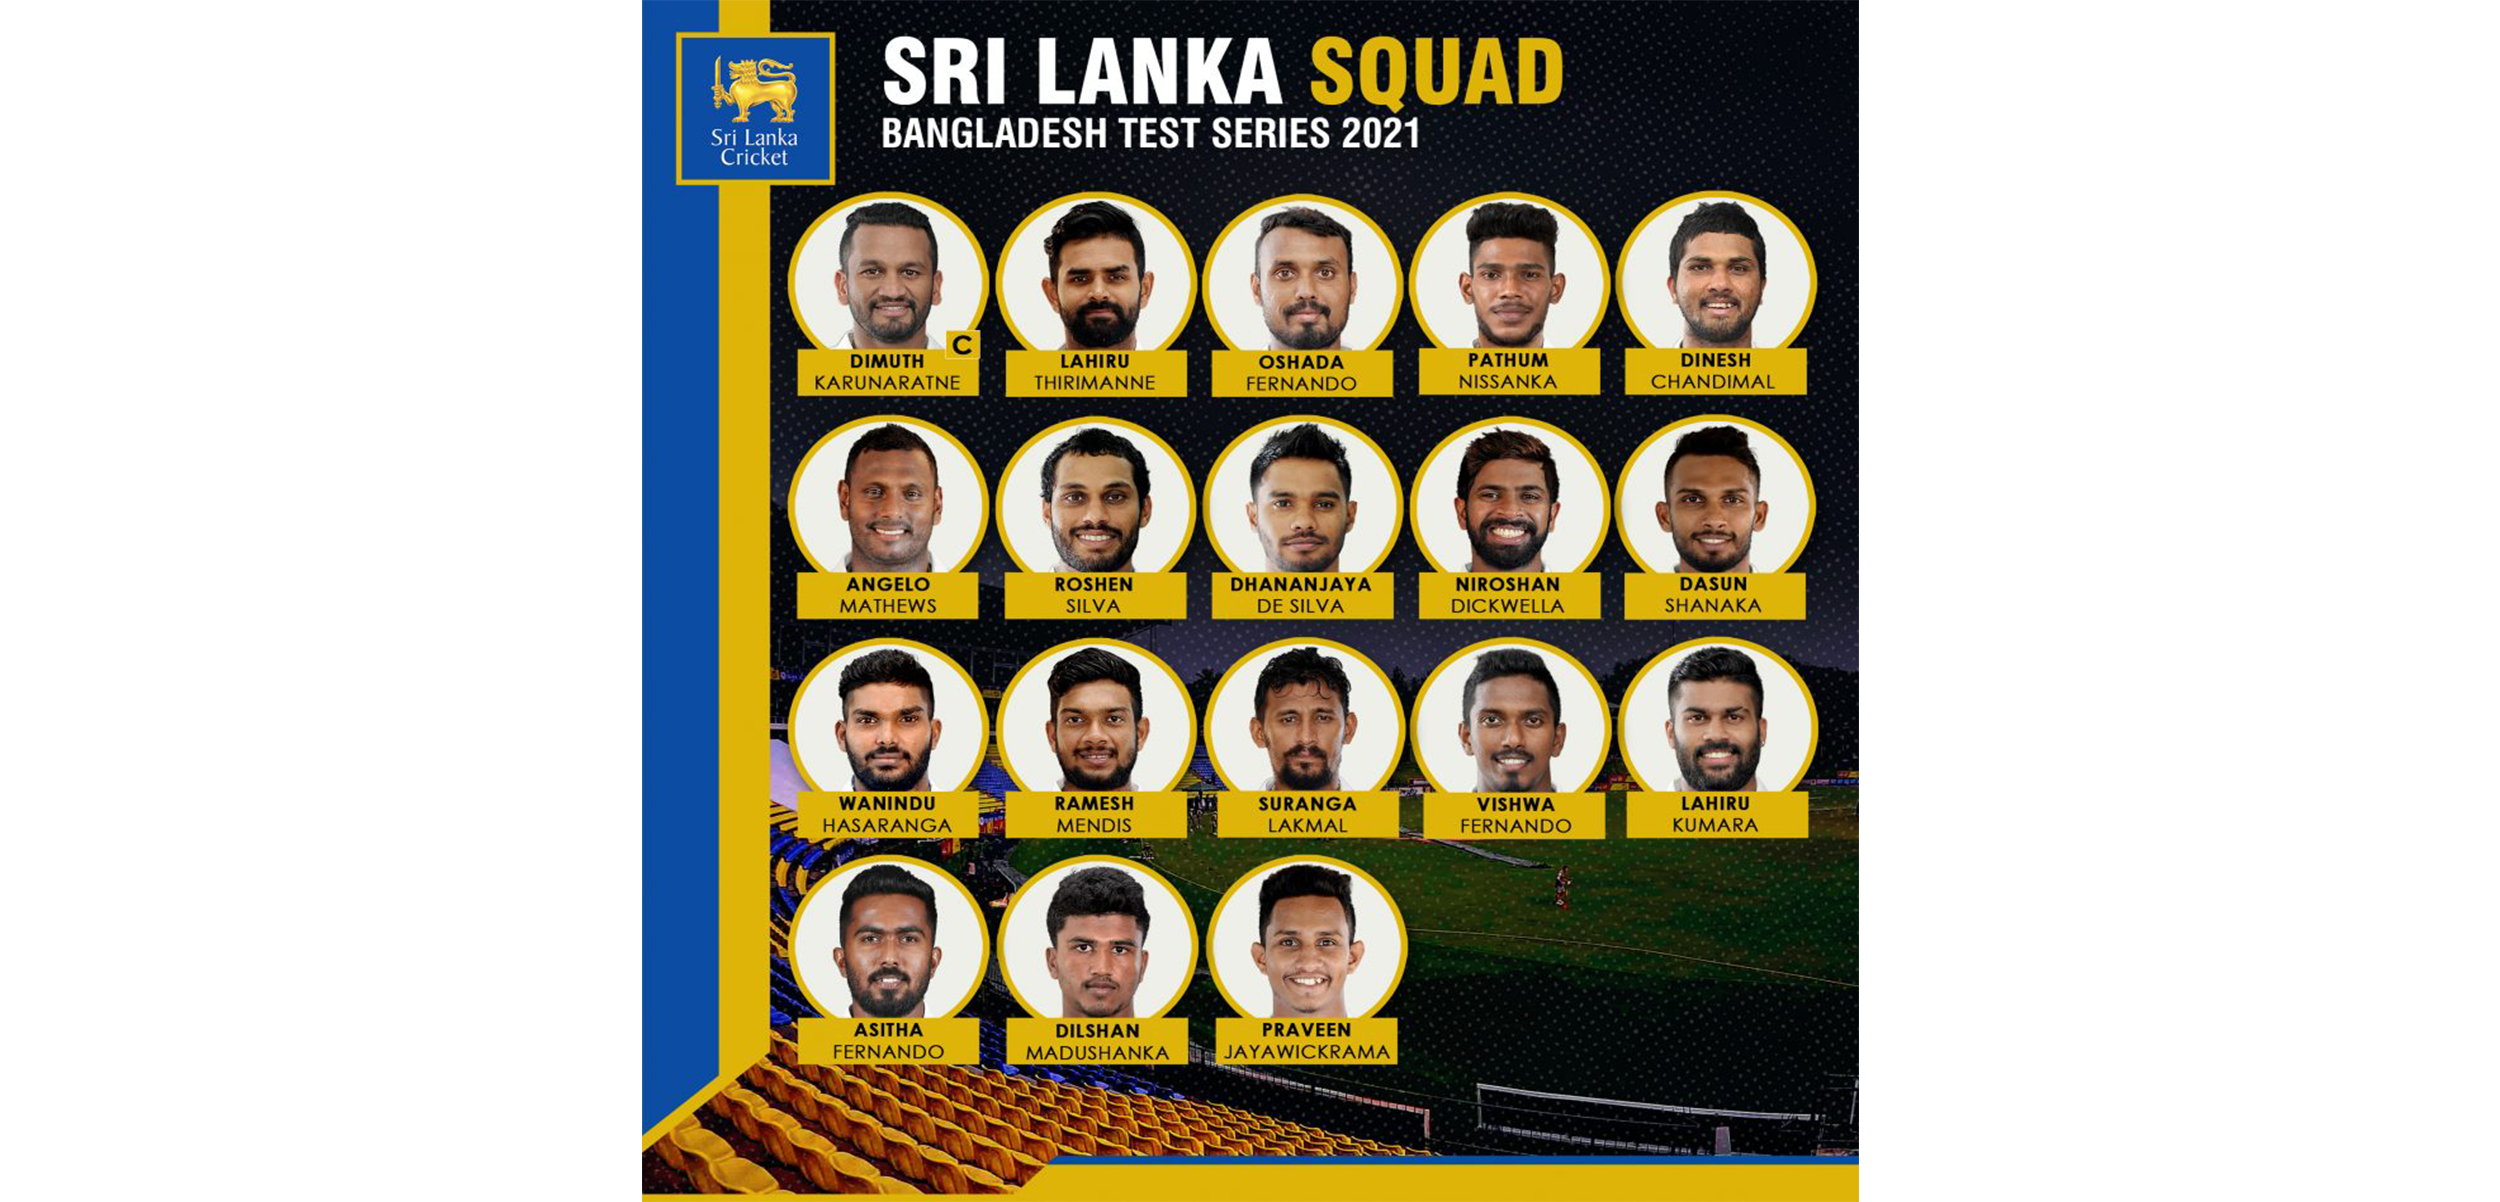 SLC: Sri Lanka squad for the 2-match Test series vs Bangladesh